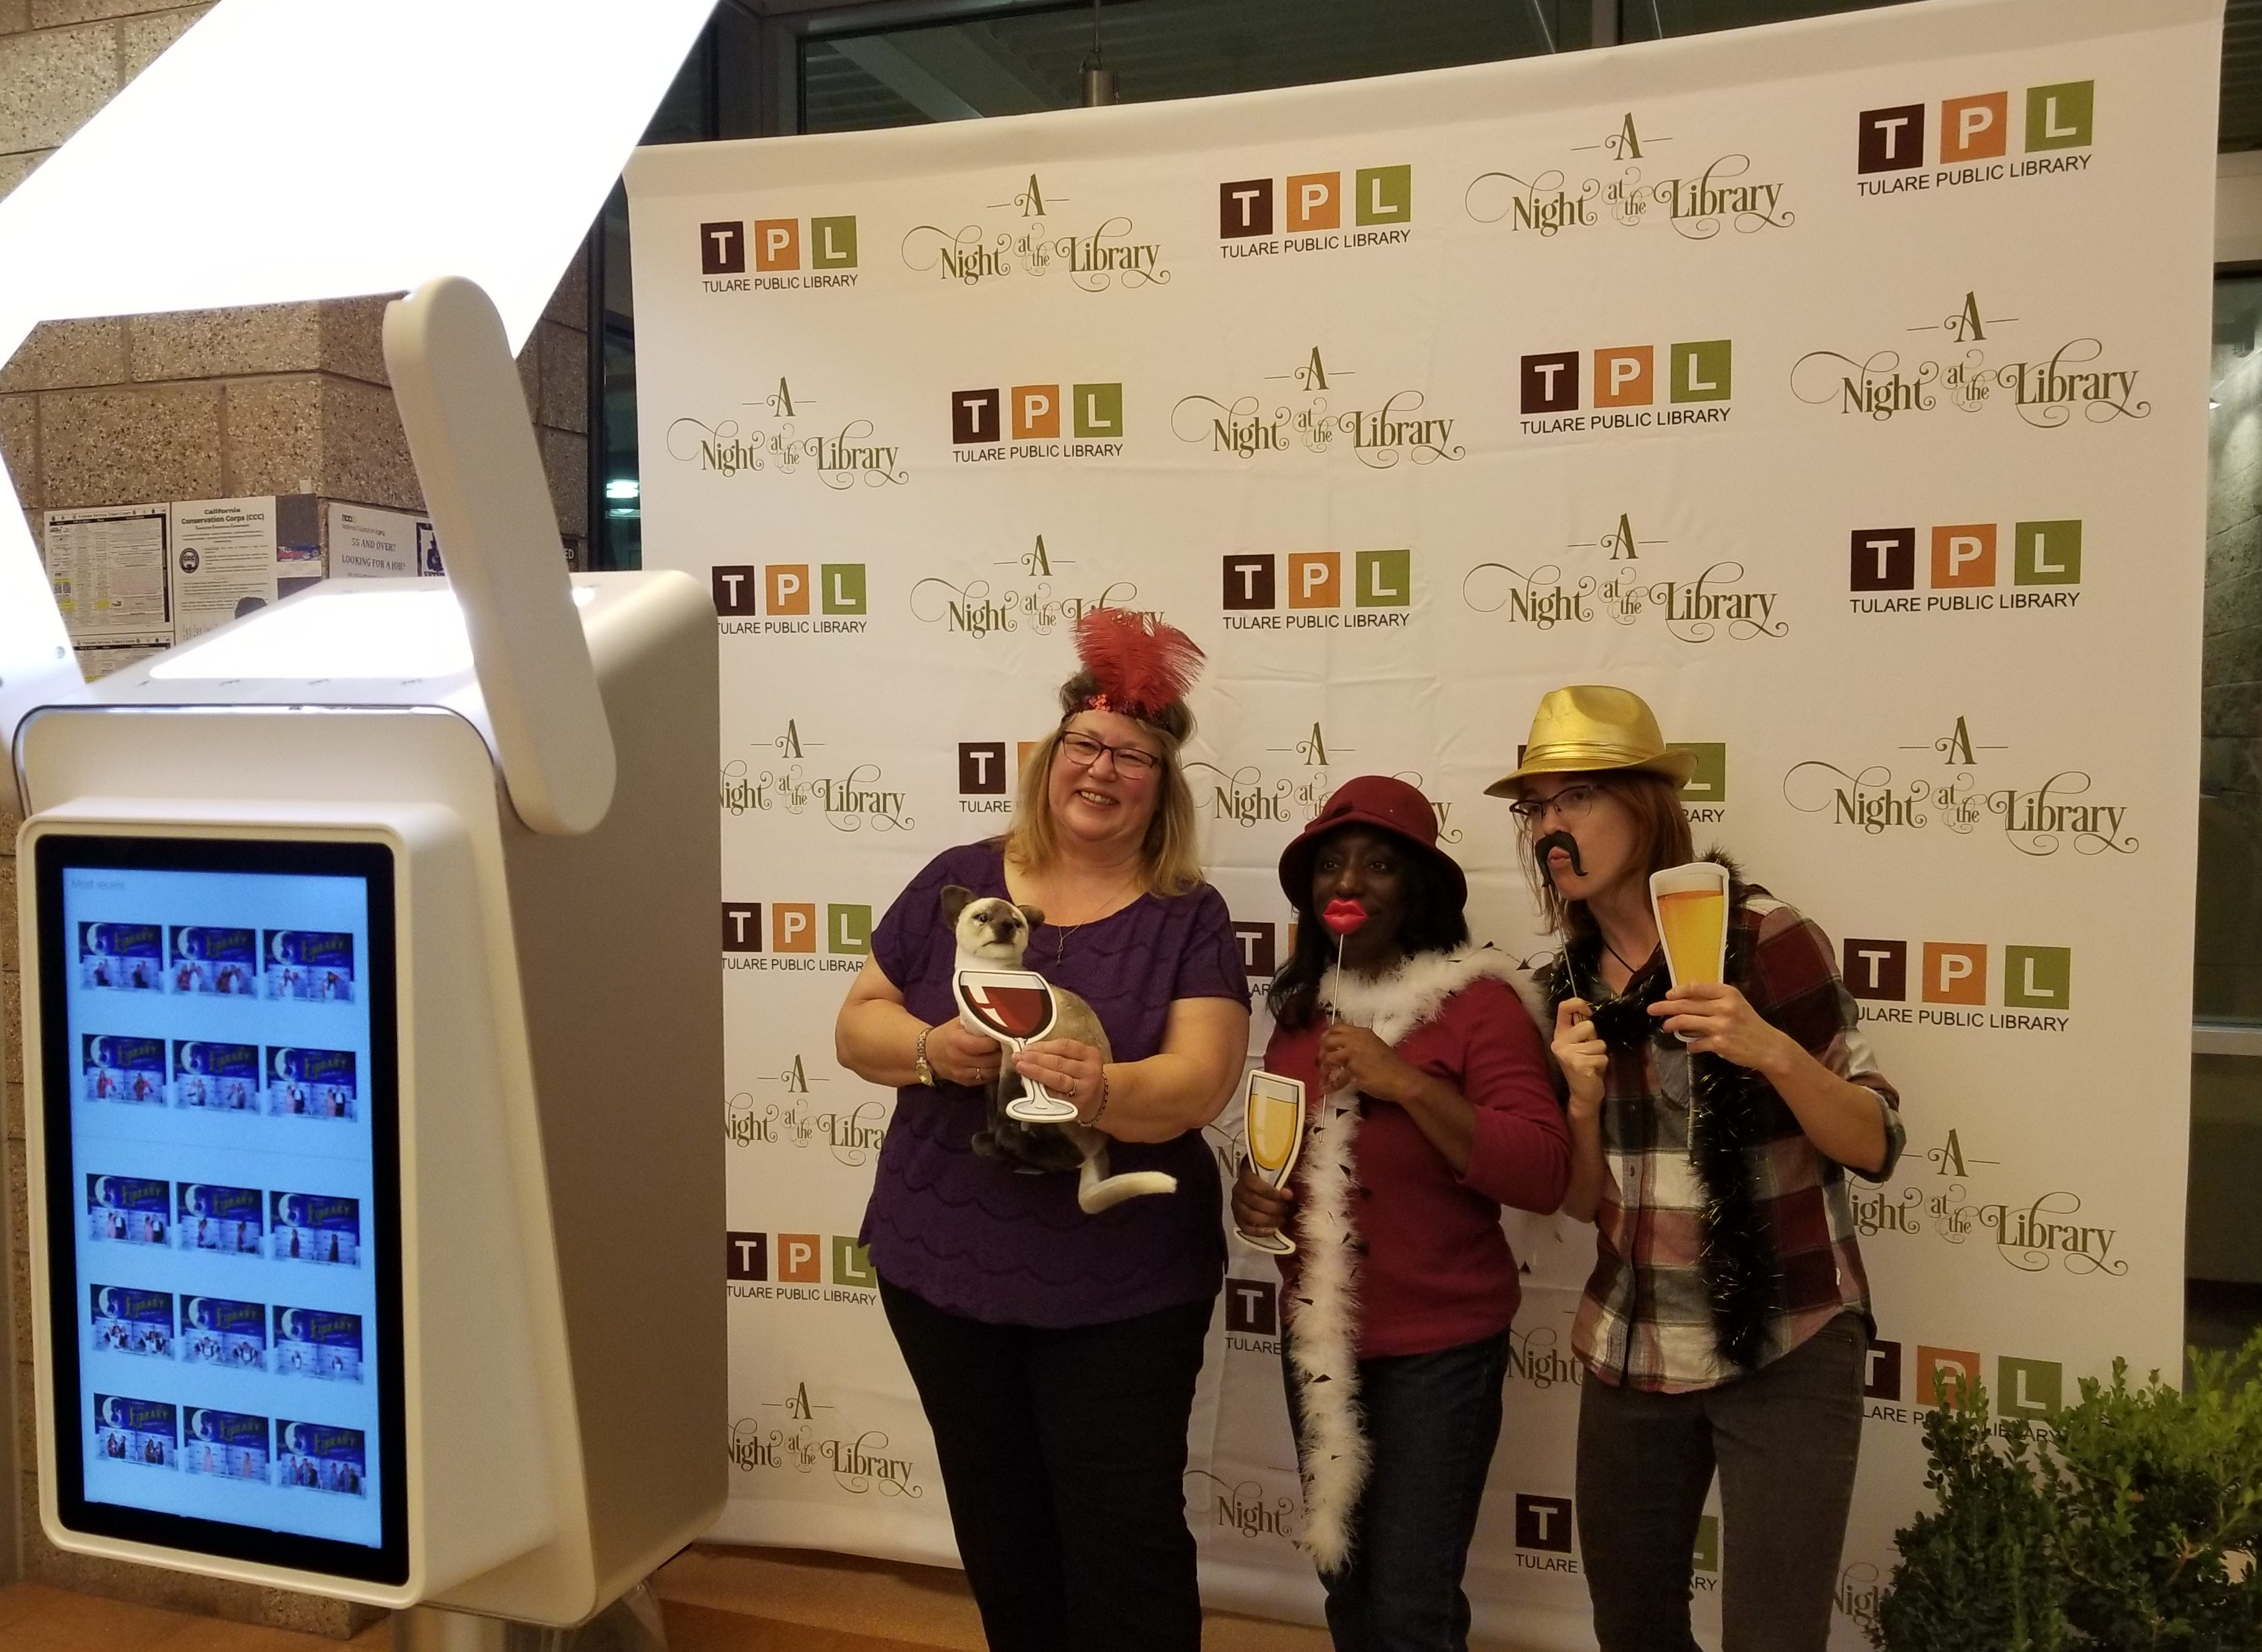 Attendees mug it up for the newest addition to 'Night at the Library' - a photo booth.